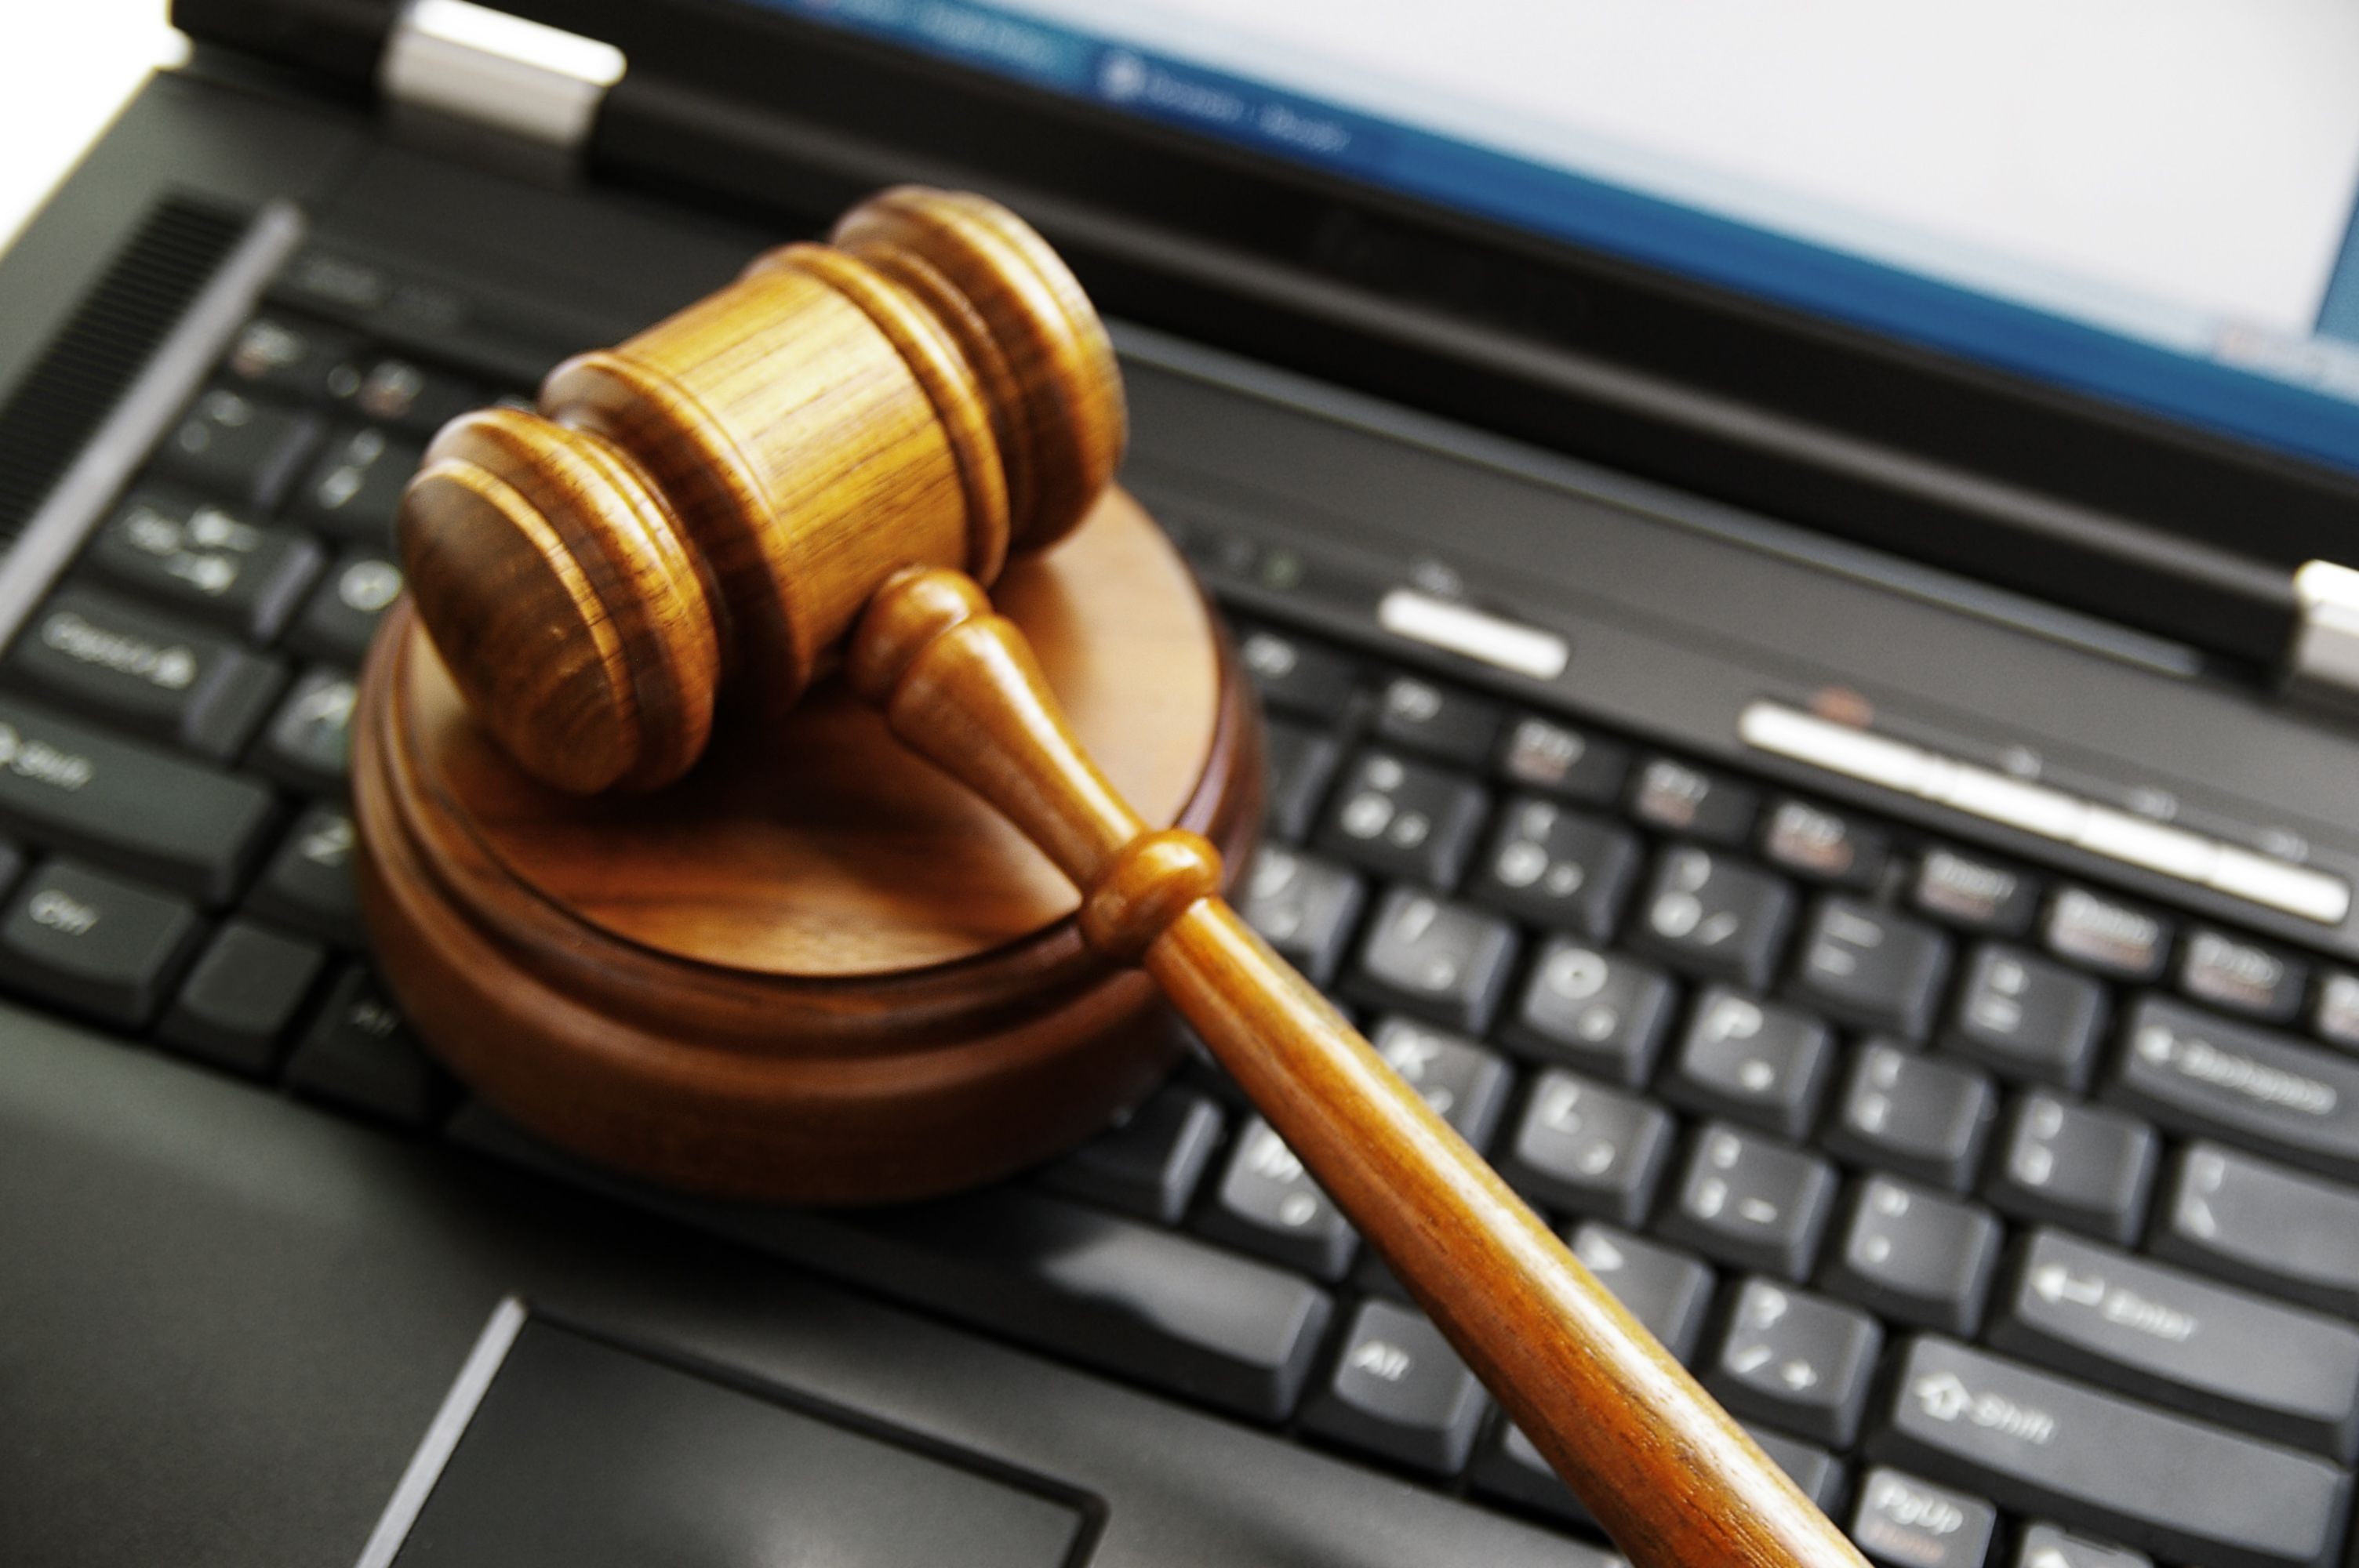 how to find legal information on the internet